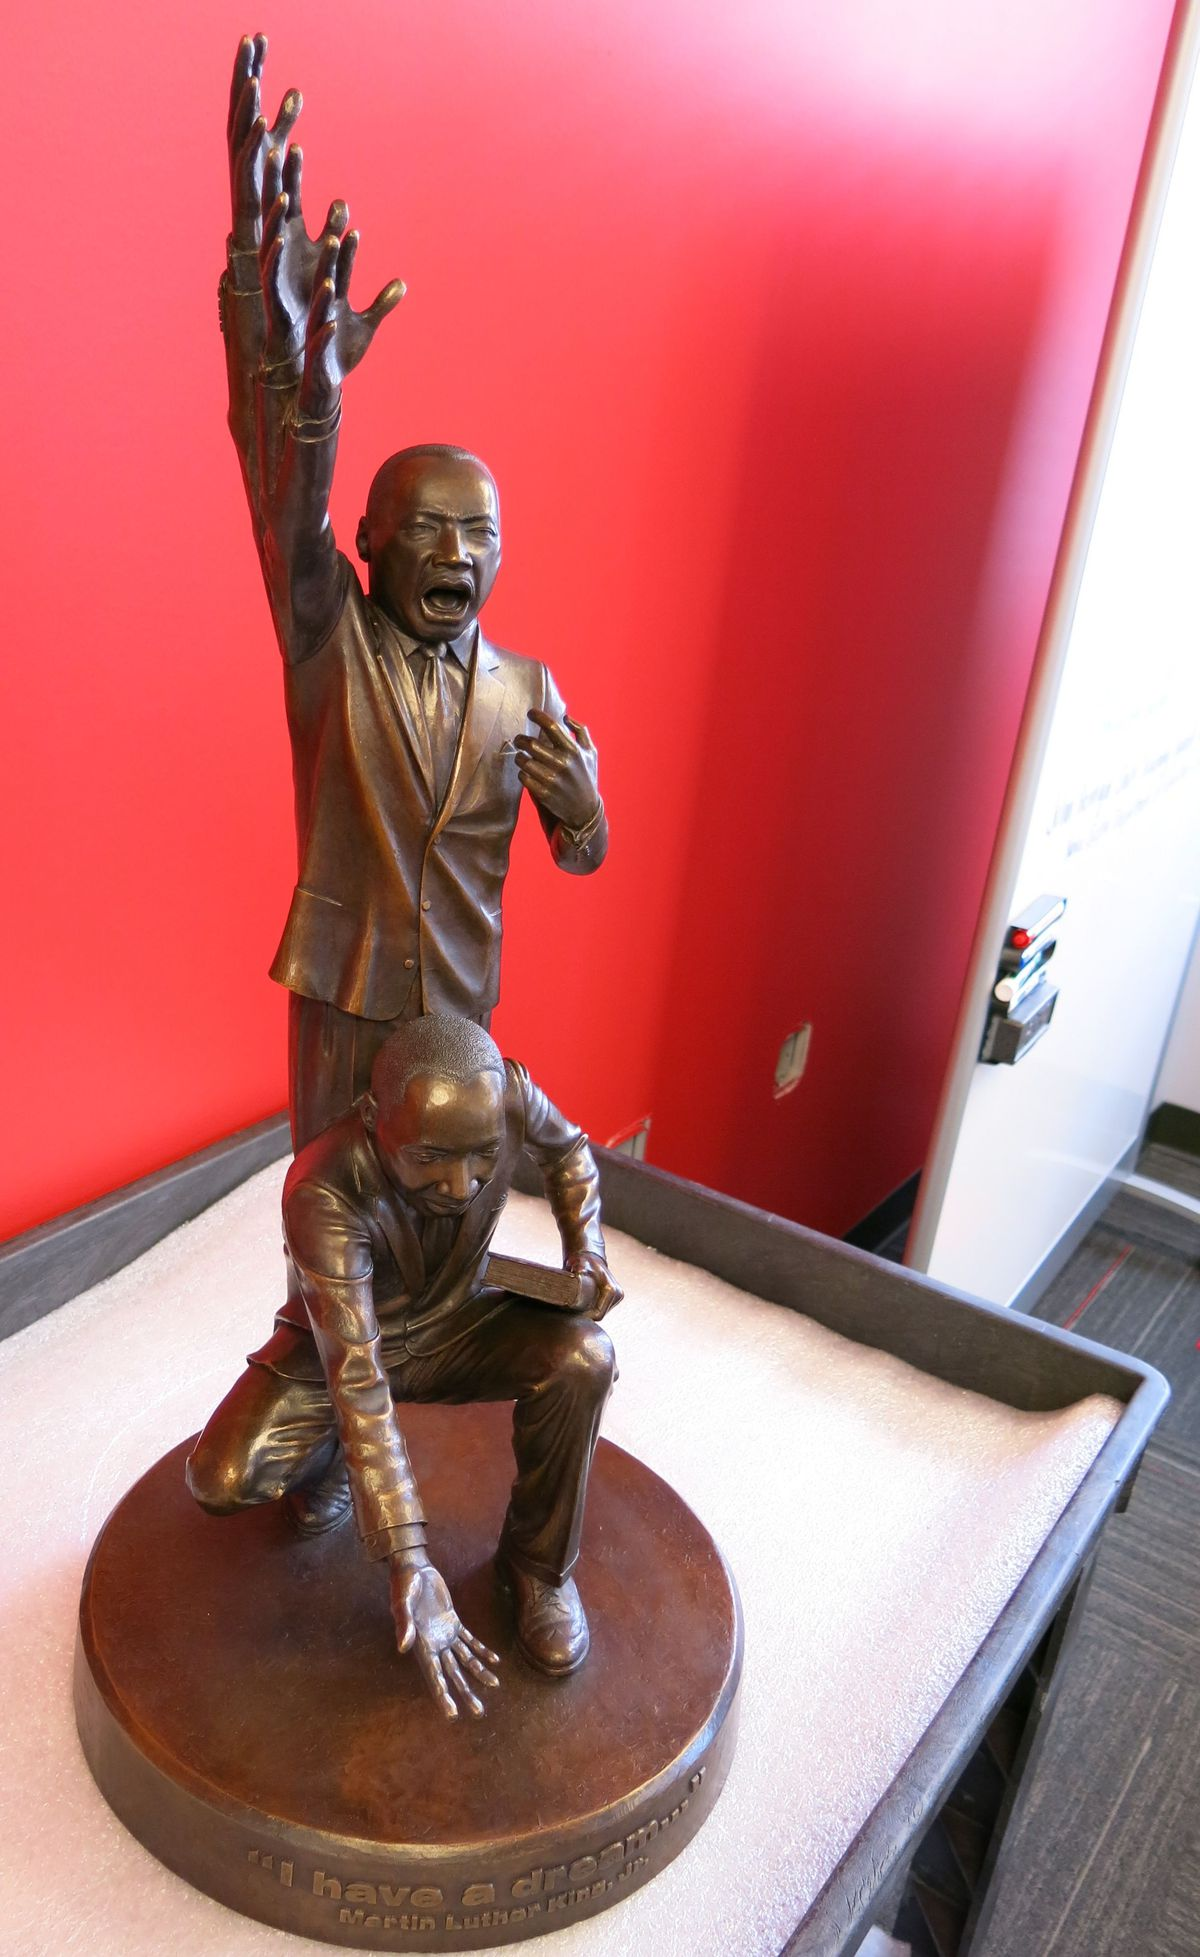 """""""I have a dream,"""" by Chris Sharp, is a cast bronze statue in the National Civil Rights Museum collection."""